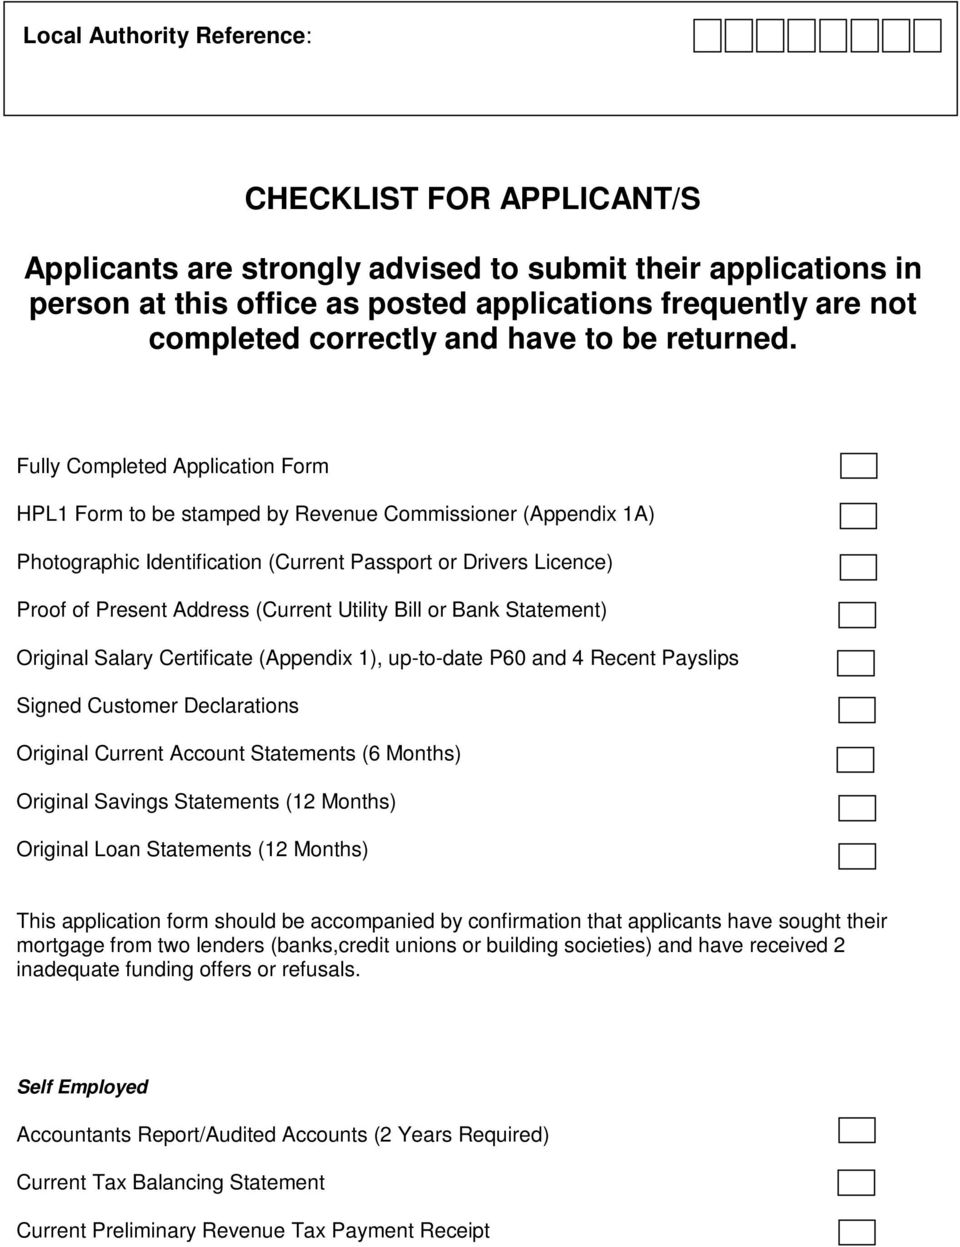 Fully Completed Application Form HPL1 Form to be stamped by Revenue Commissioner (Appendix 1A) Photographic Identification (Current Passport or Drivers Licence) Proof of Present Address (Current